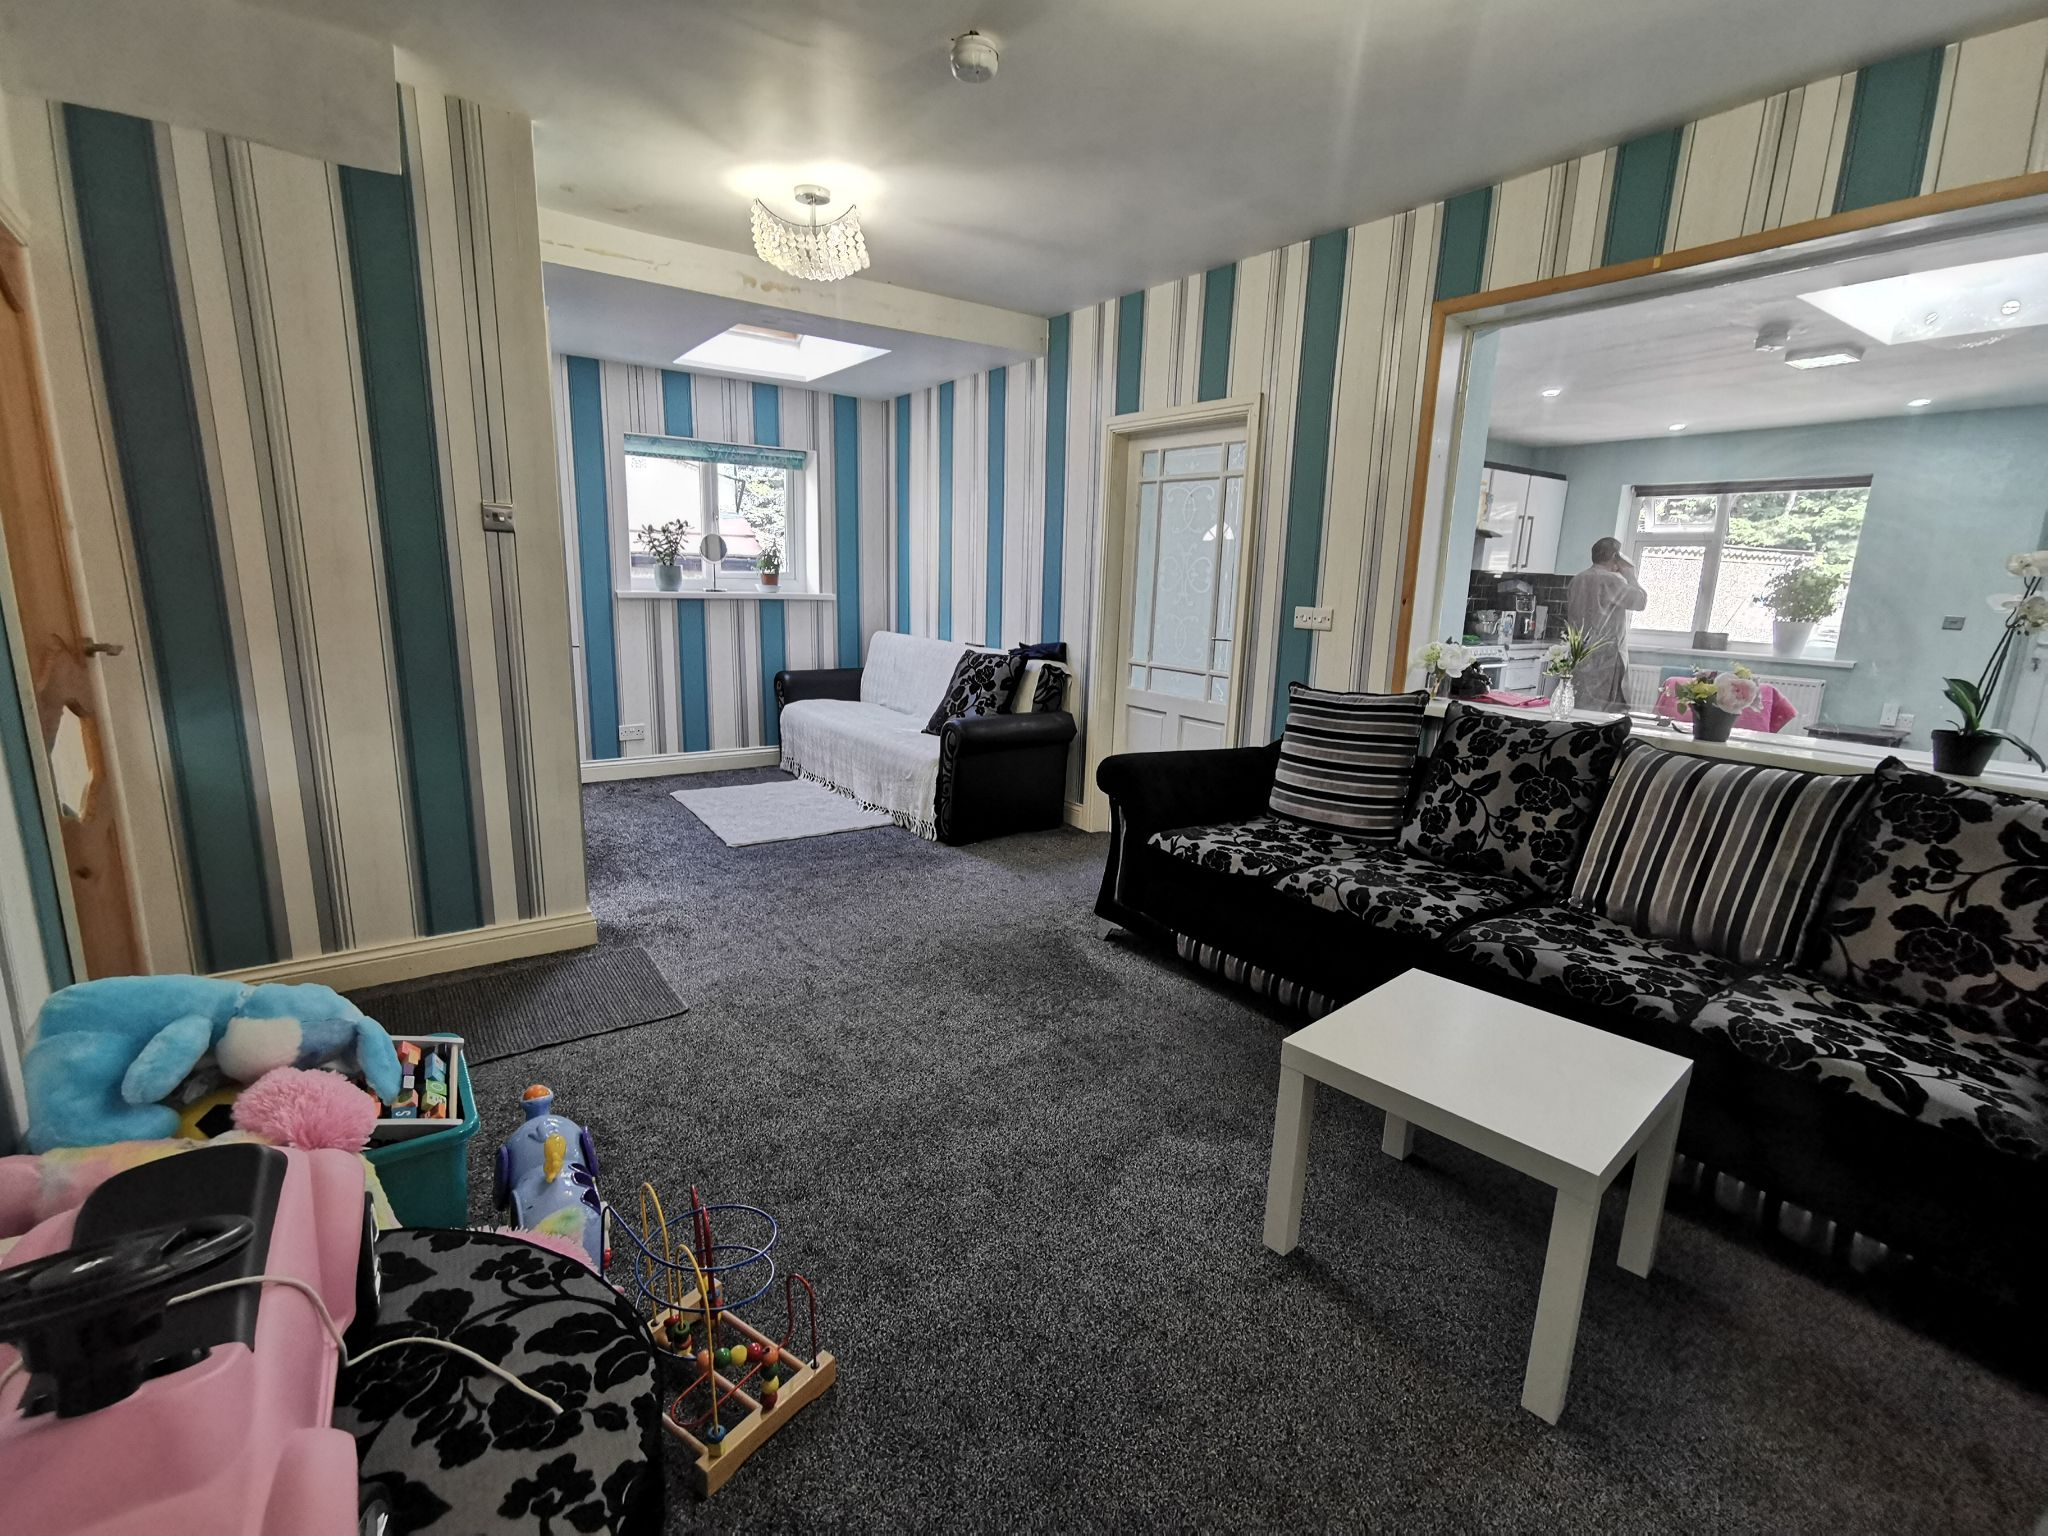 4 bedroom semi-detached house SSTC in Bradford - Photograph 7.